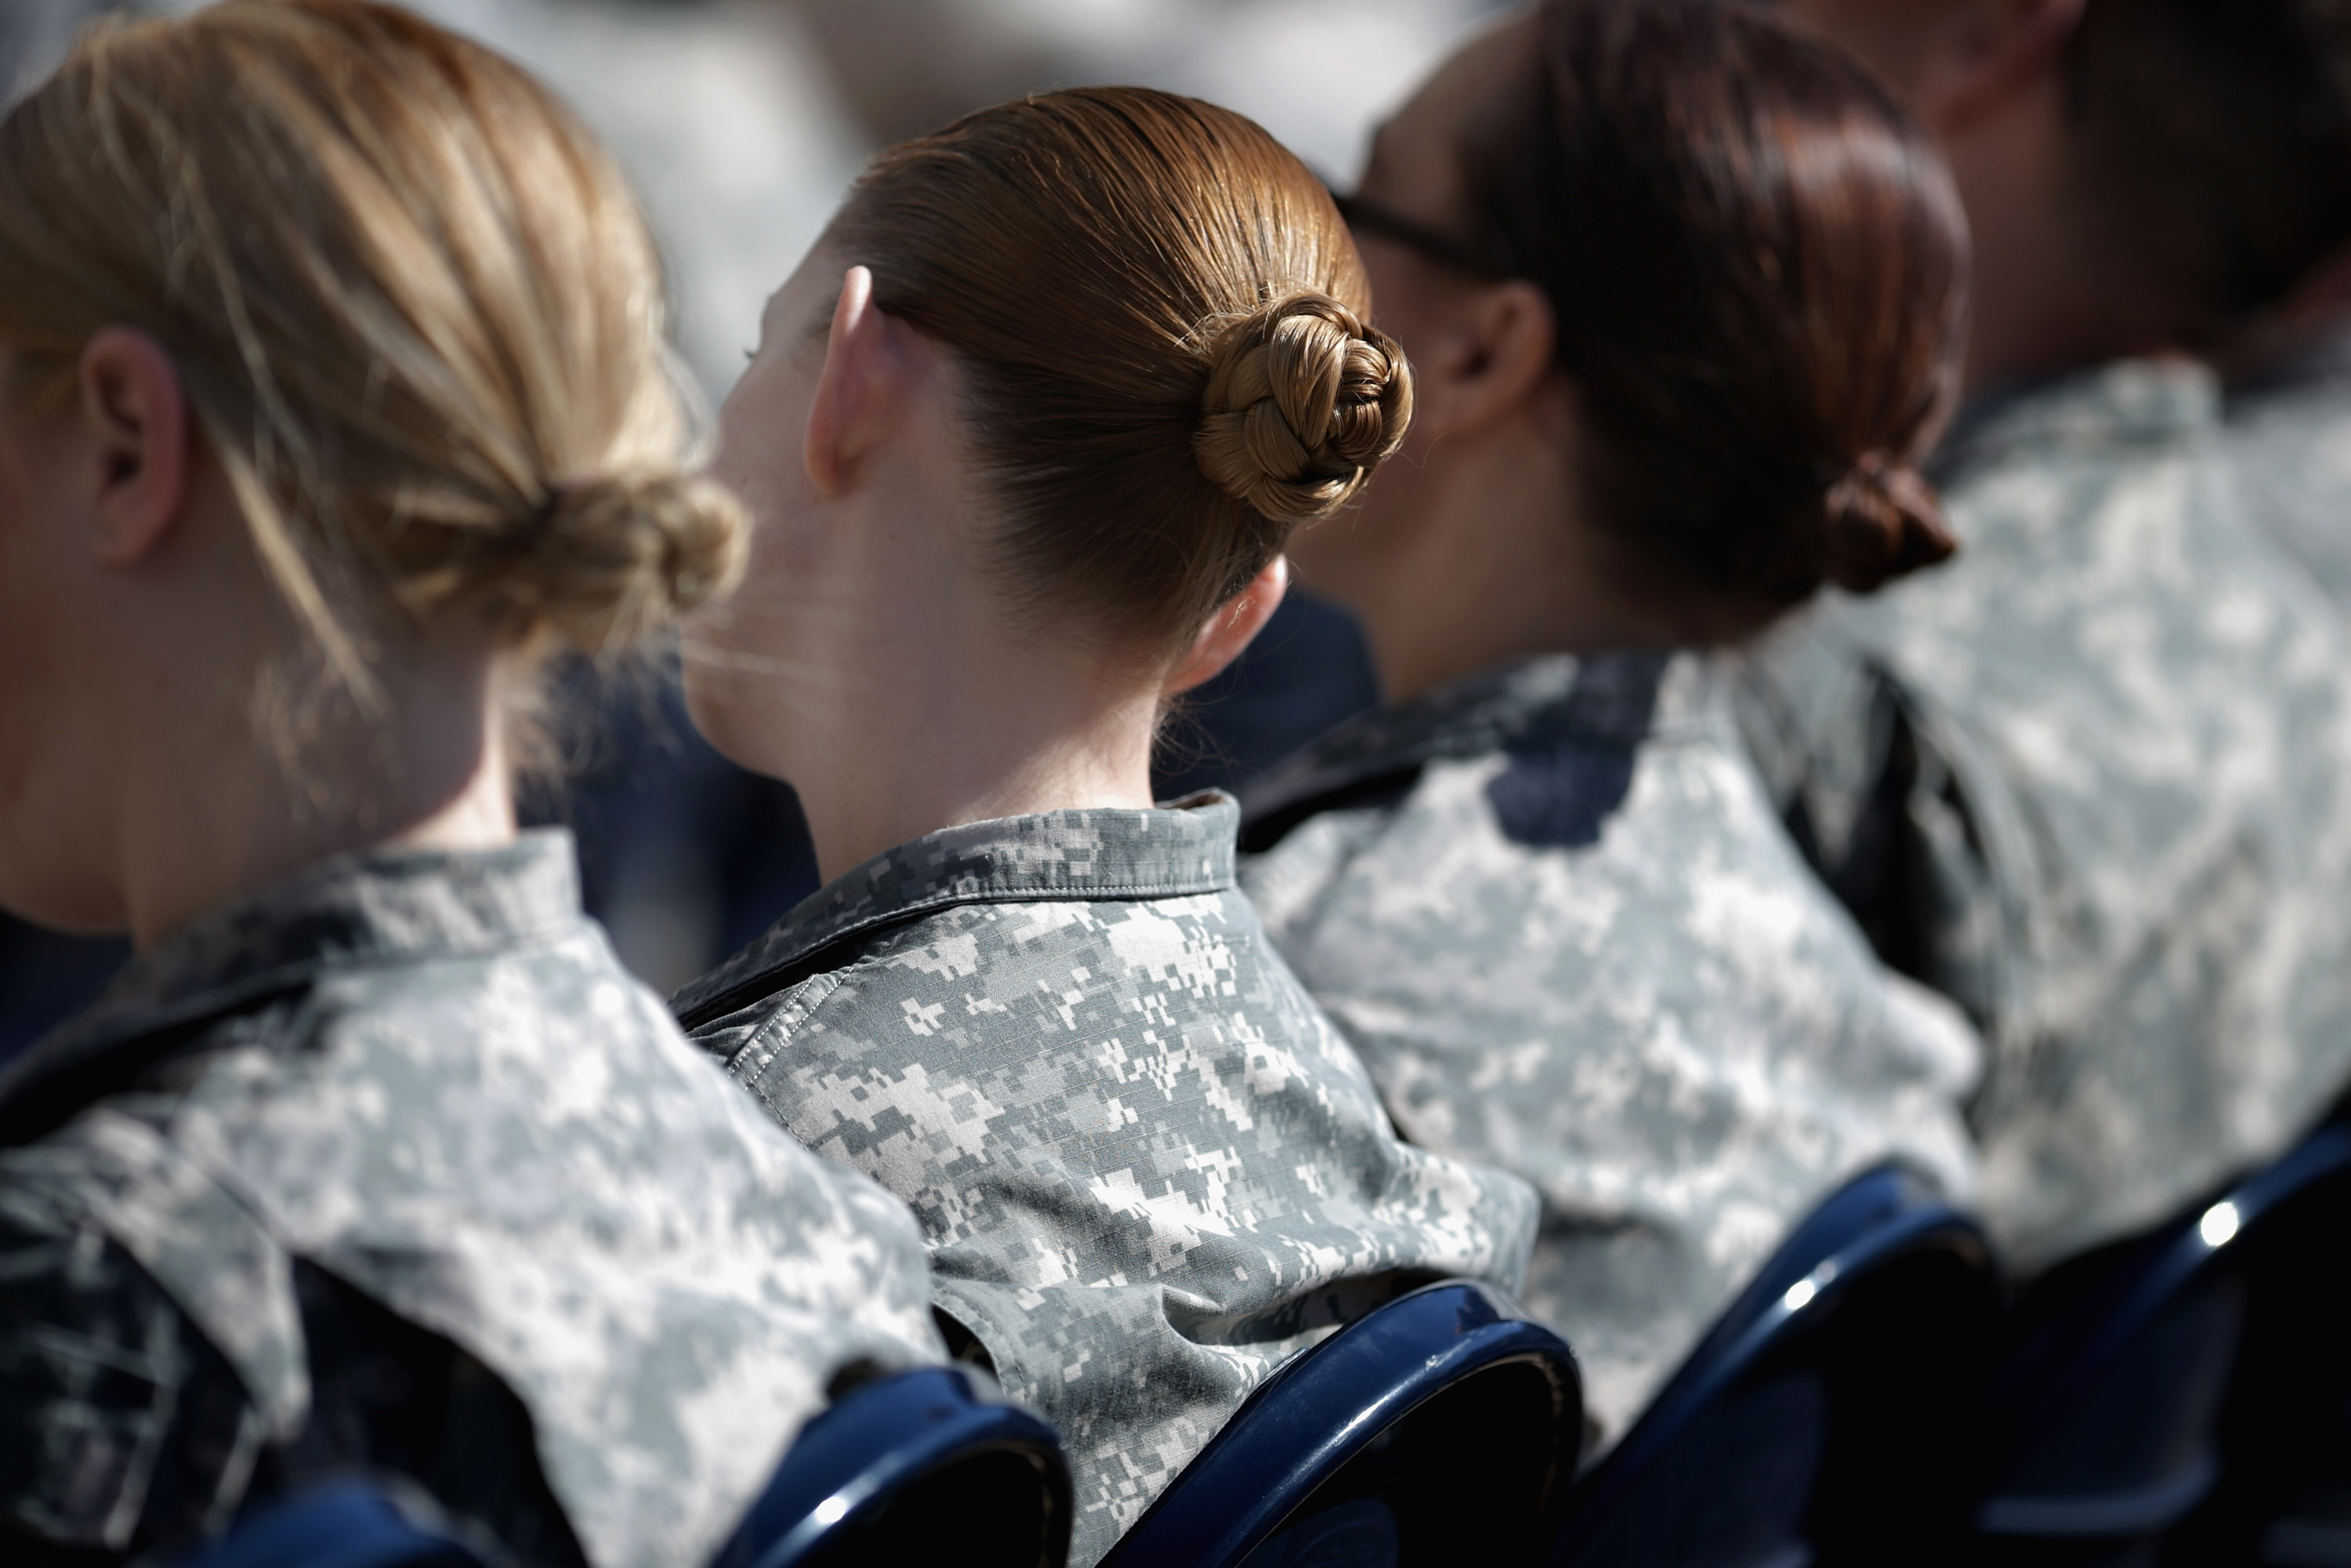 Soldiers, officers, and civilian employees attend the commencement ceremony for the US Army's annual observance of Sexual Assault Awareness and Prevention Month in the Pentagon Center Courtyard March 31, 2015 in Arlington, Virginia.